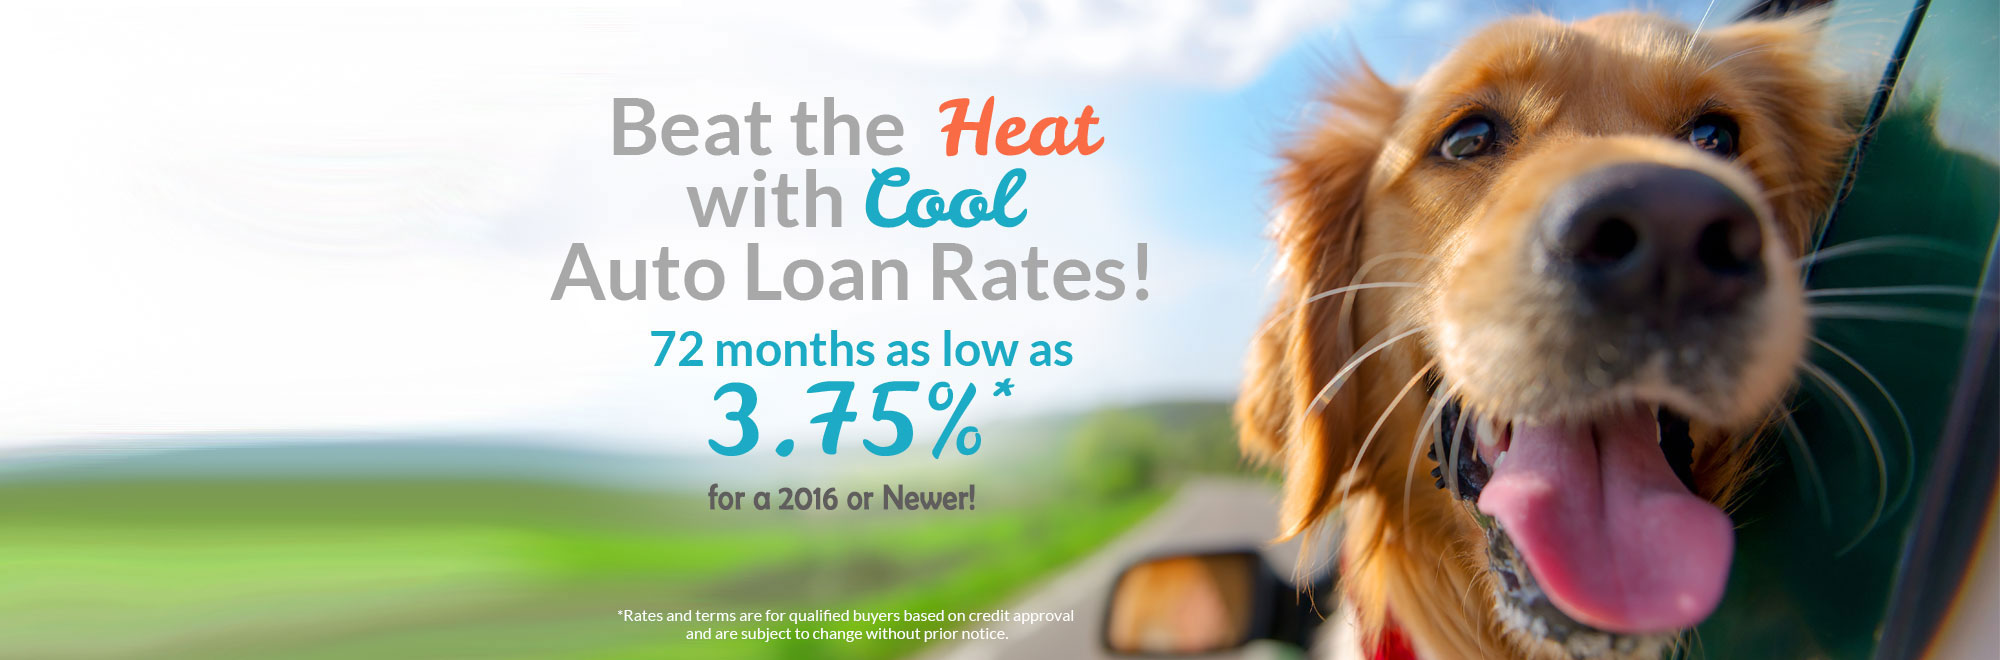 Beat the Heat with Cool Auto Loan Rates! 72 months as low as 3.75% for 2016 or newer vehicles!